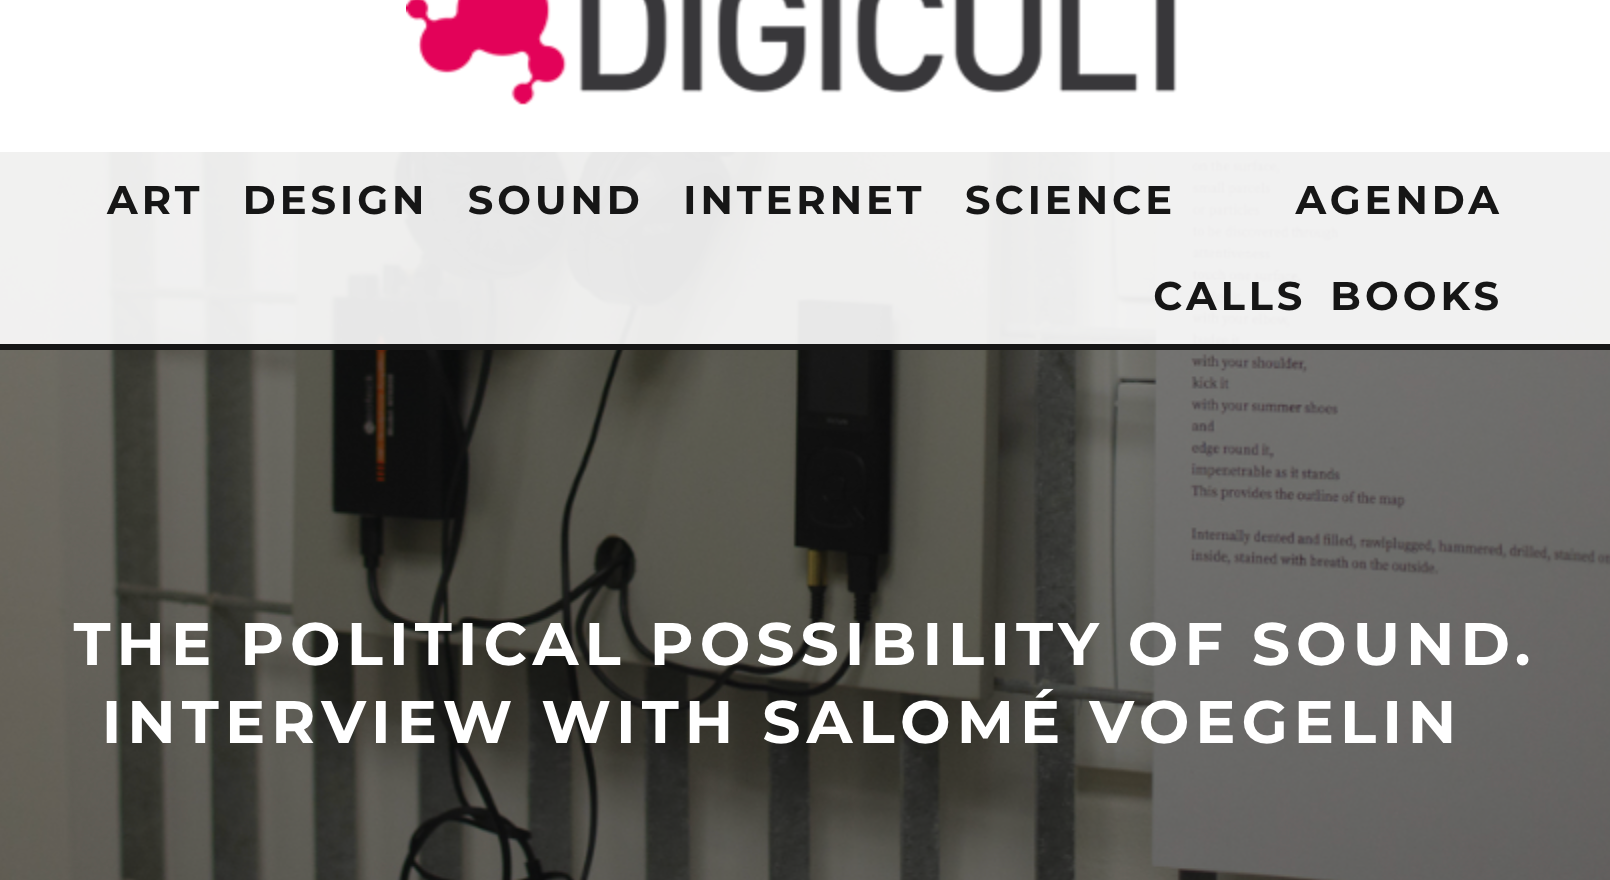 Digicult: The Political Possibility of Sound